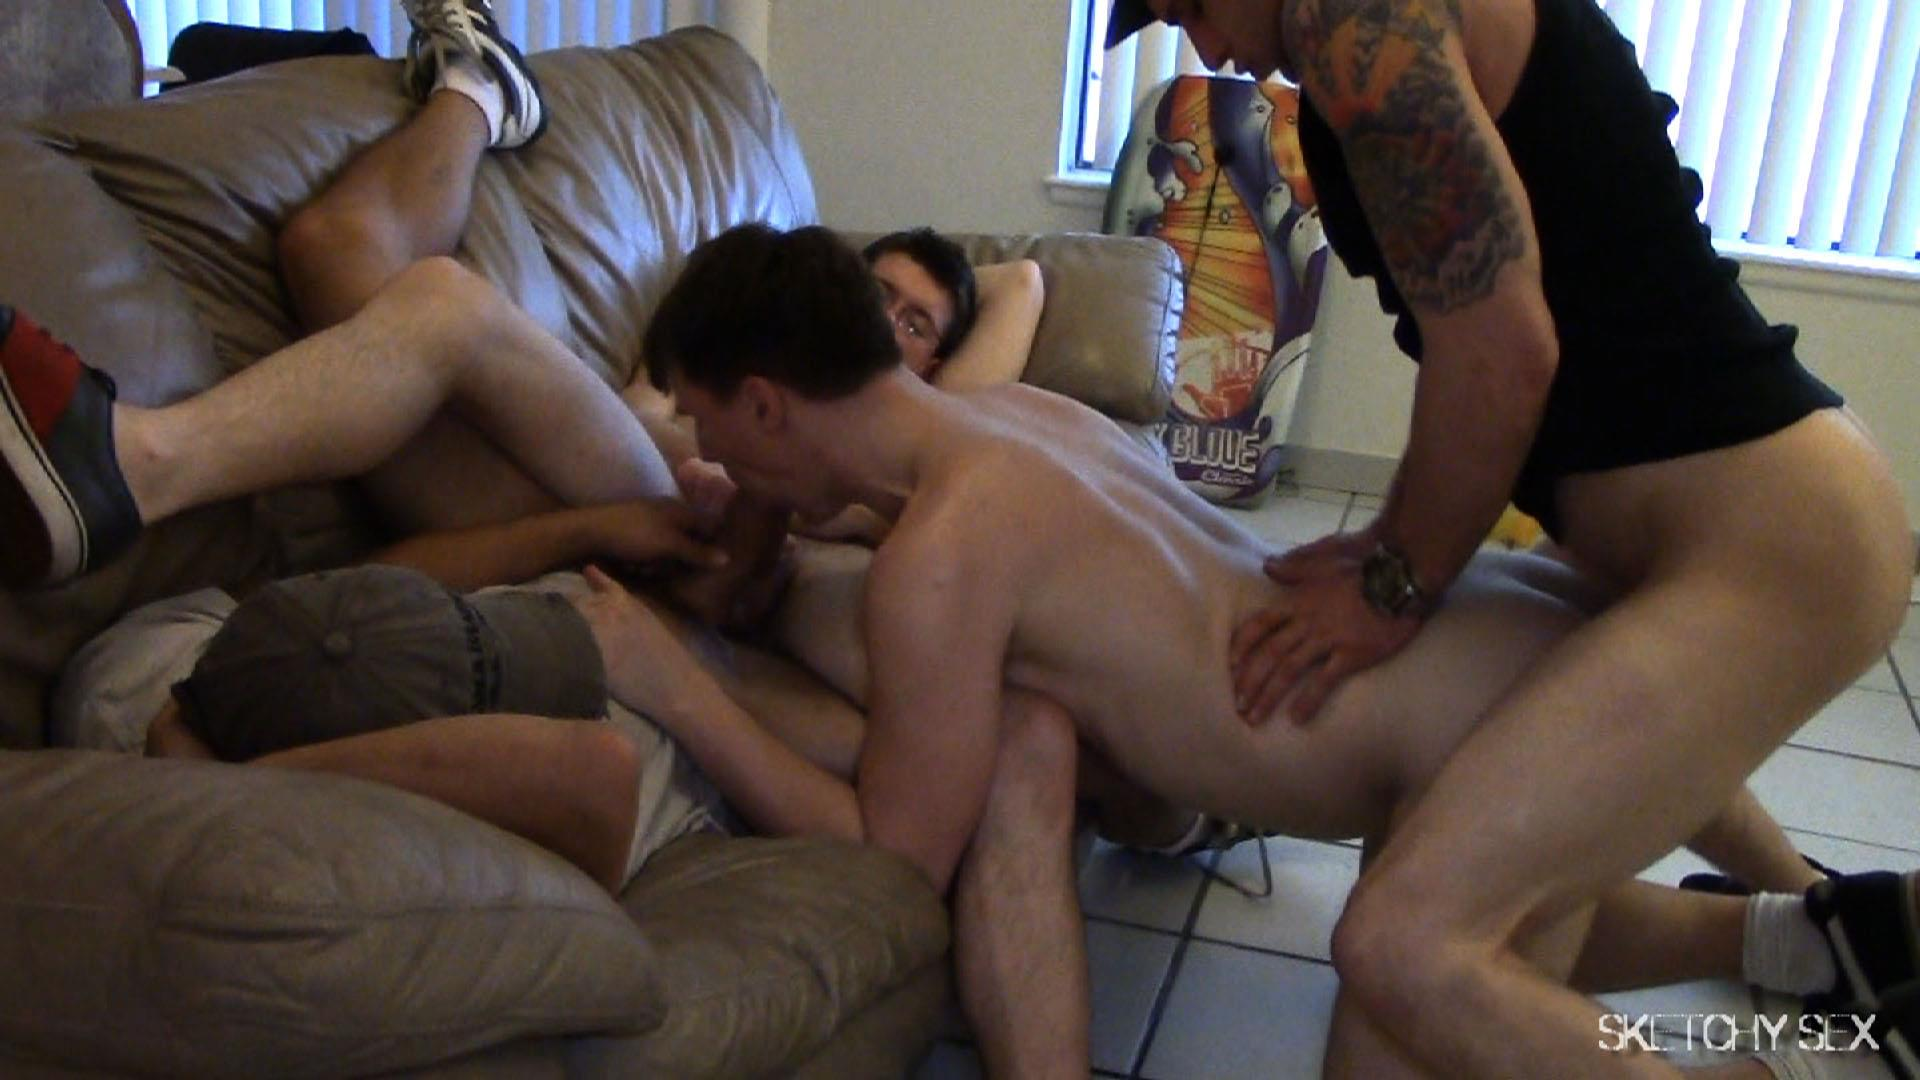 Sketchy-Sex-Craigslist-Hookup-Bareback-Sex-Party-Amateur-Gay-Porn-15 Craigslist Slut Takes Three Bare Cocks At One Time